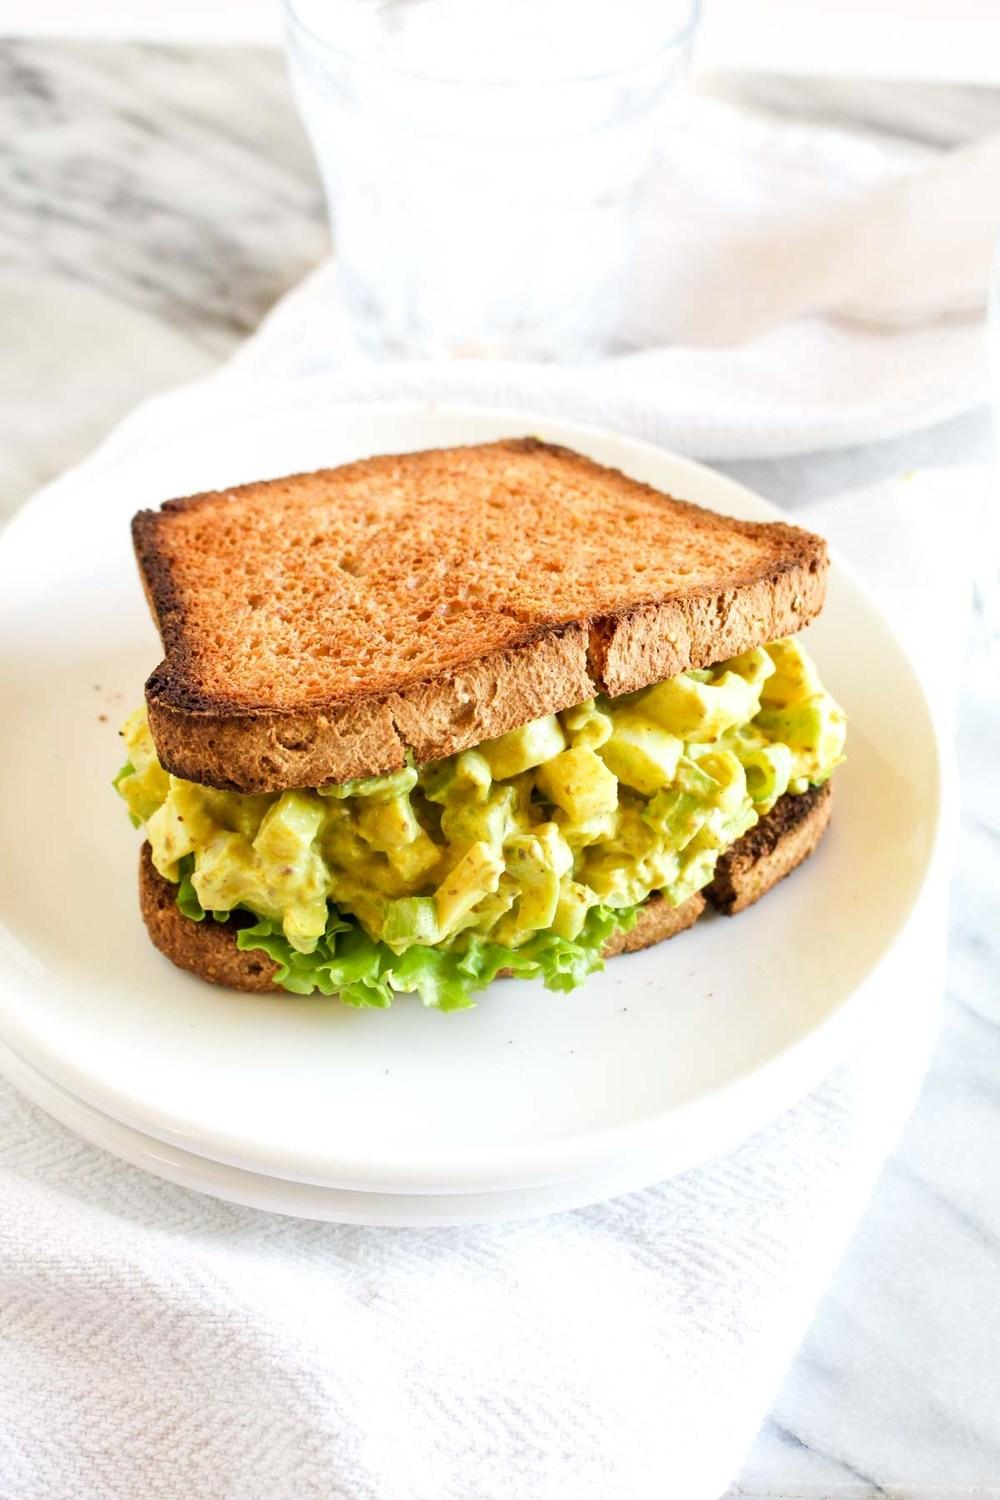 Vegan Egg Salad Sandwich Recipe | HeyFood — heyfoodapp.com